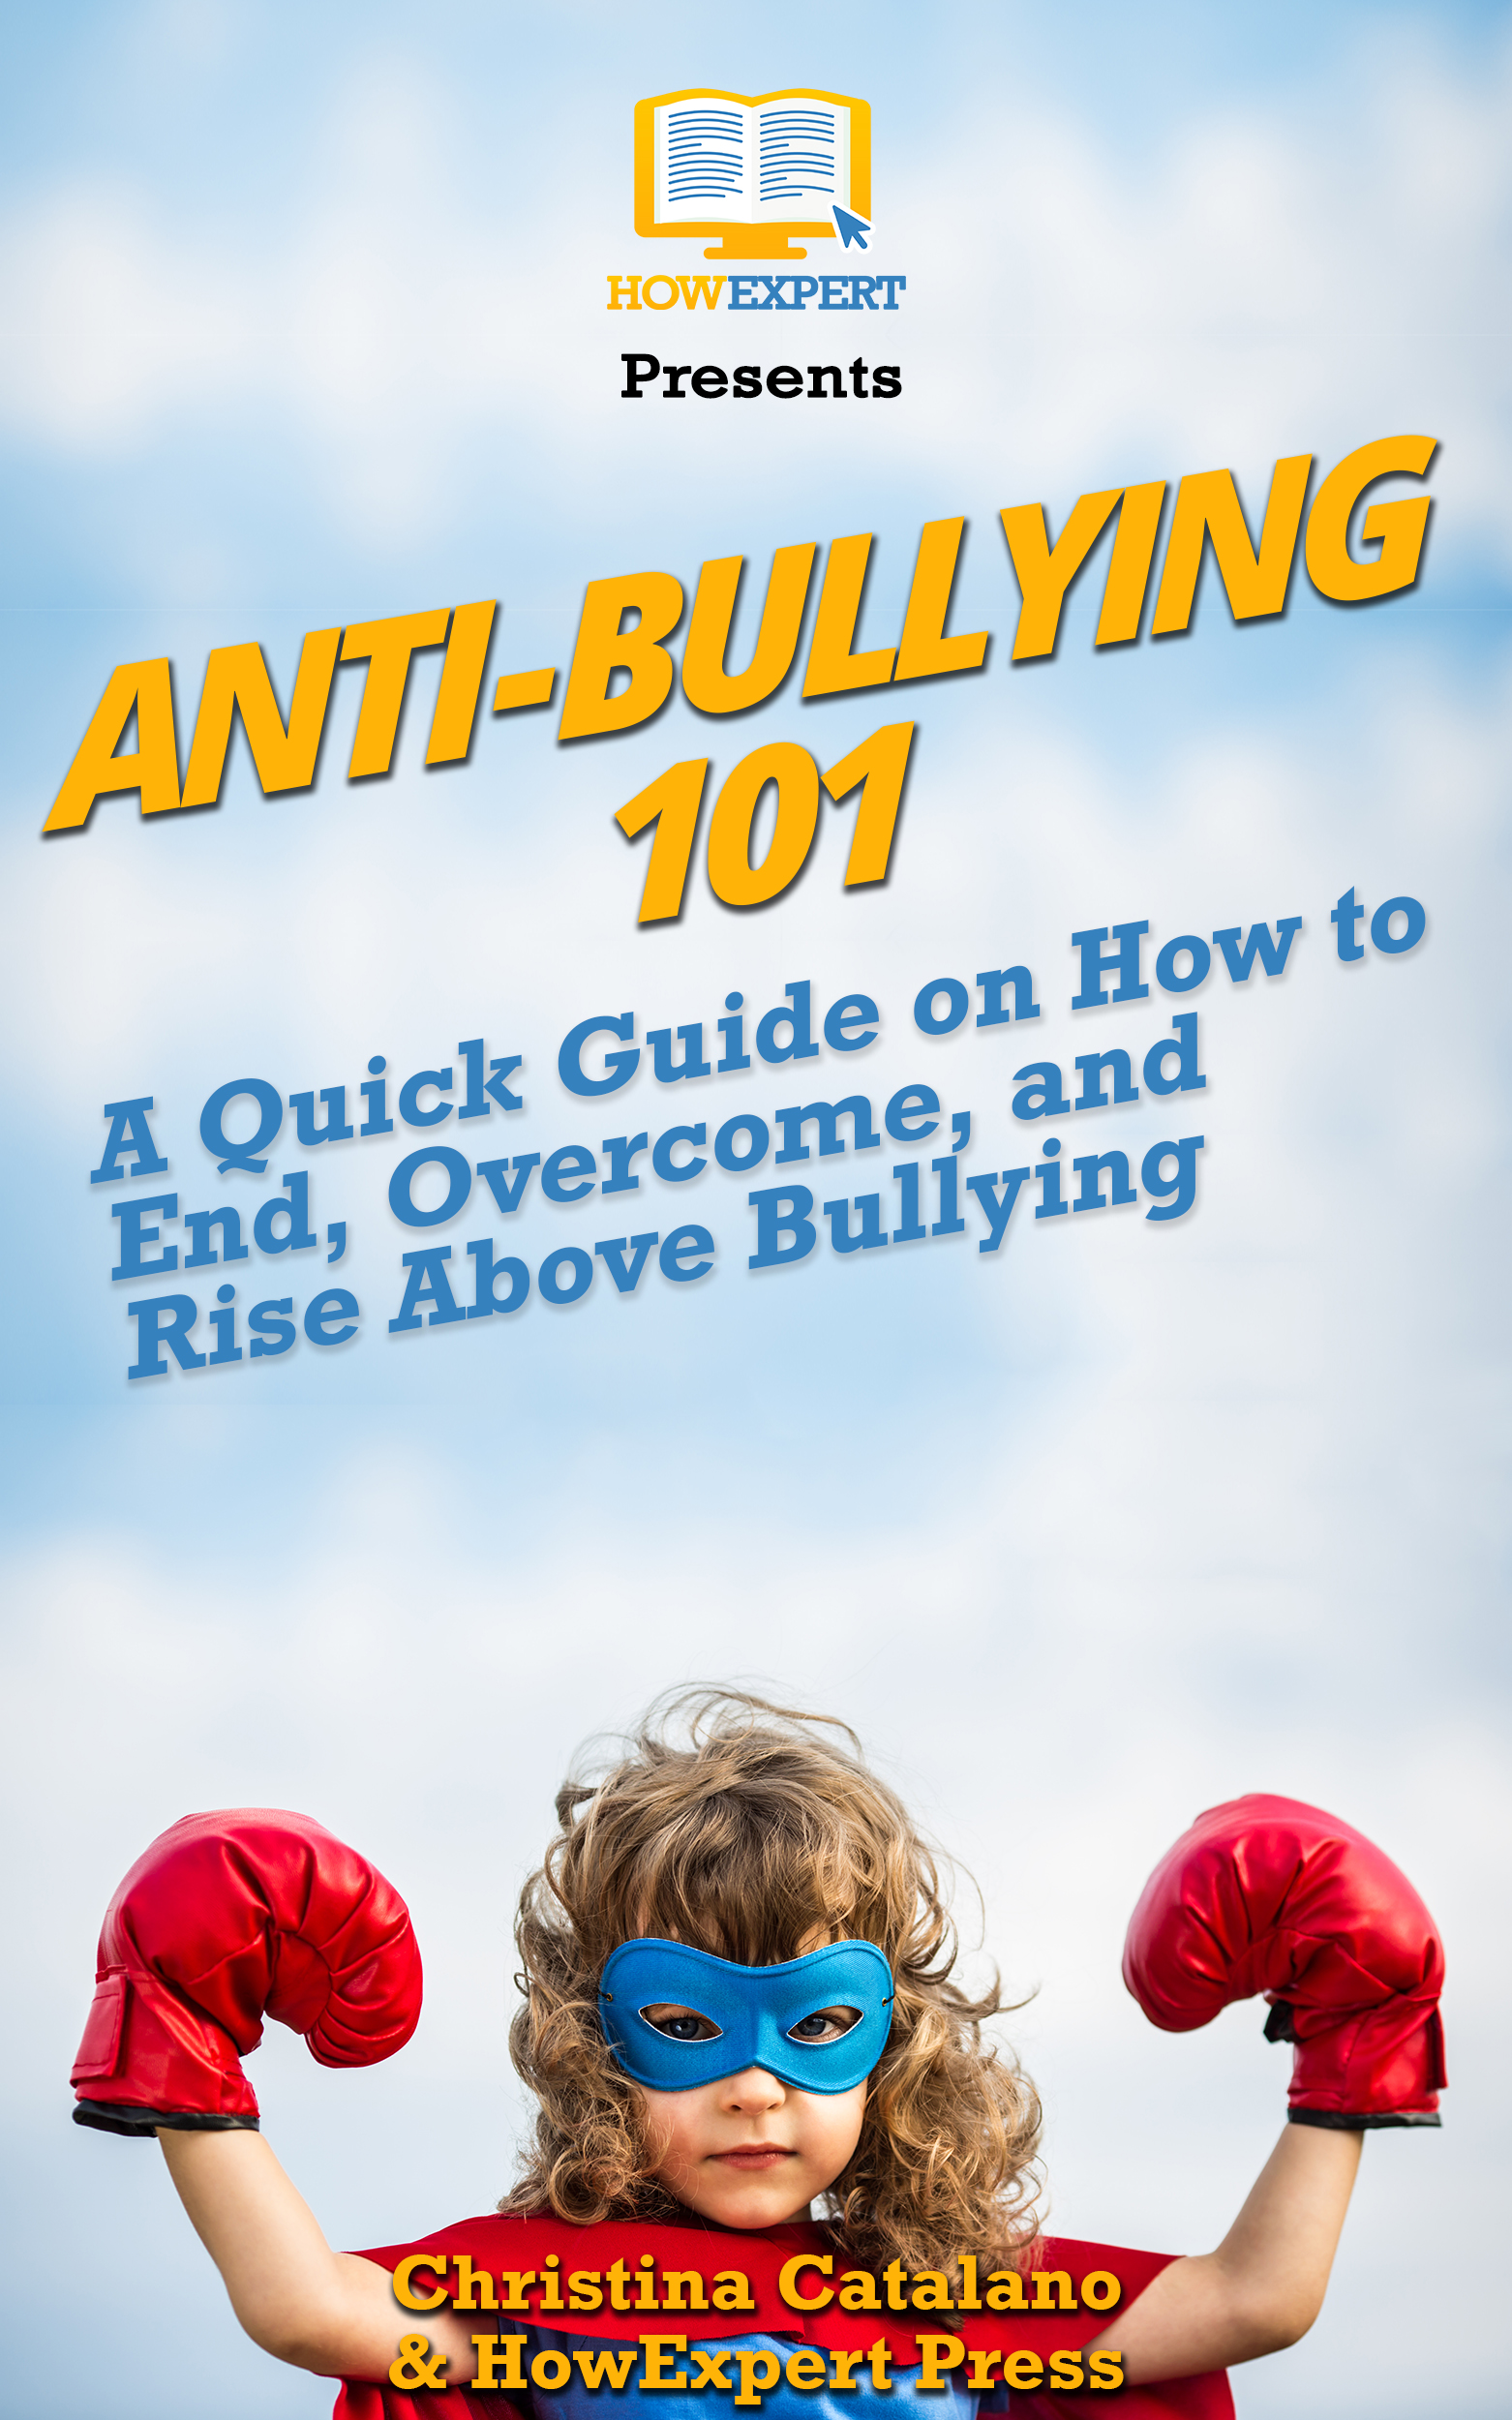 Anti-Bullying 101 A Quick Guide on How to End, Overcome, and Rise Above Bullying